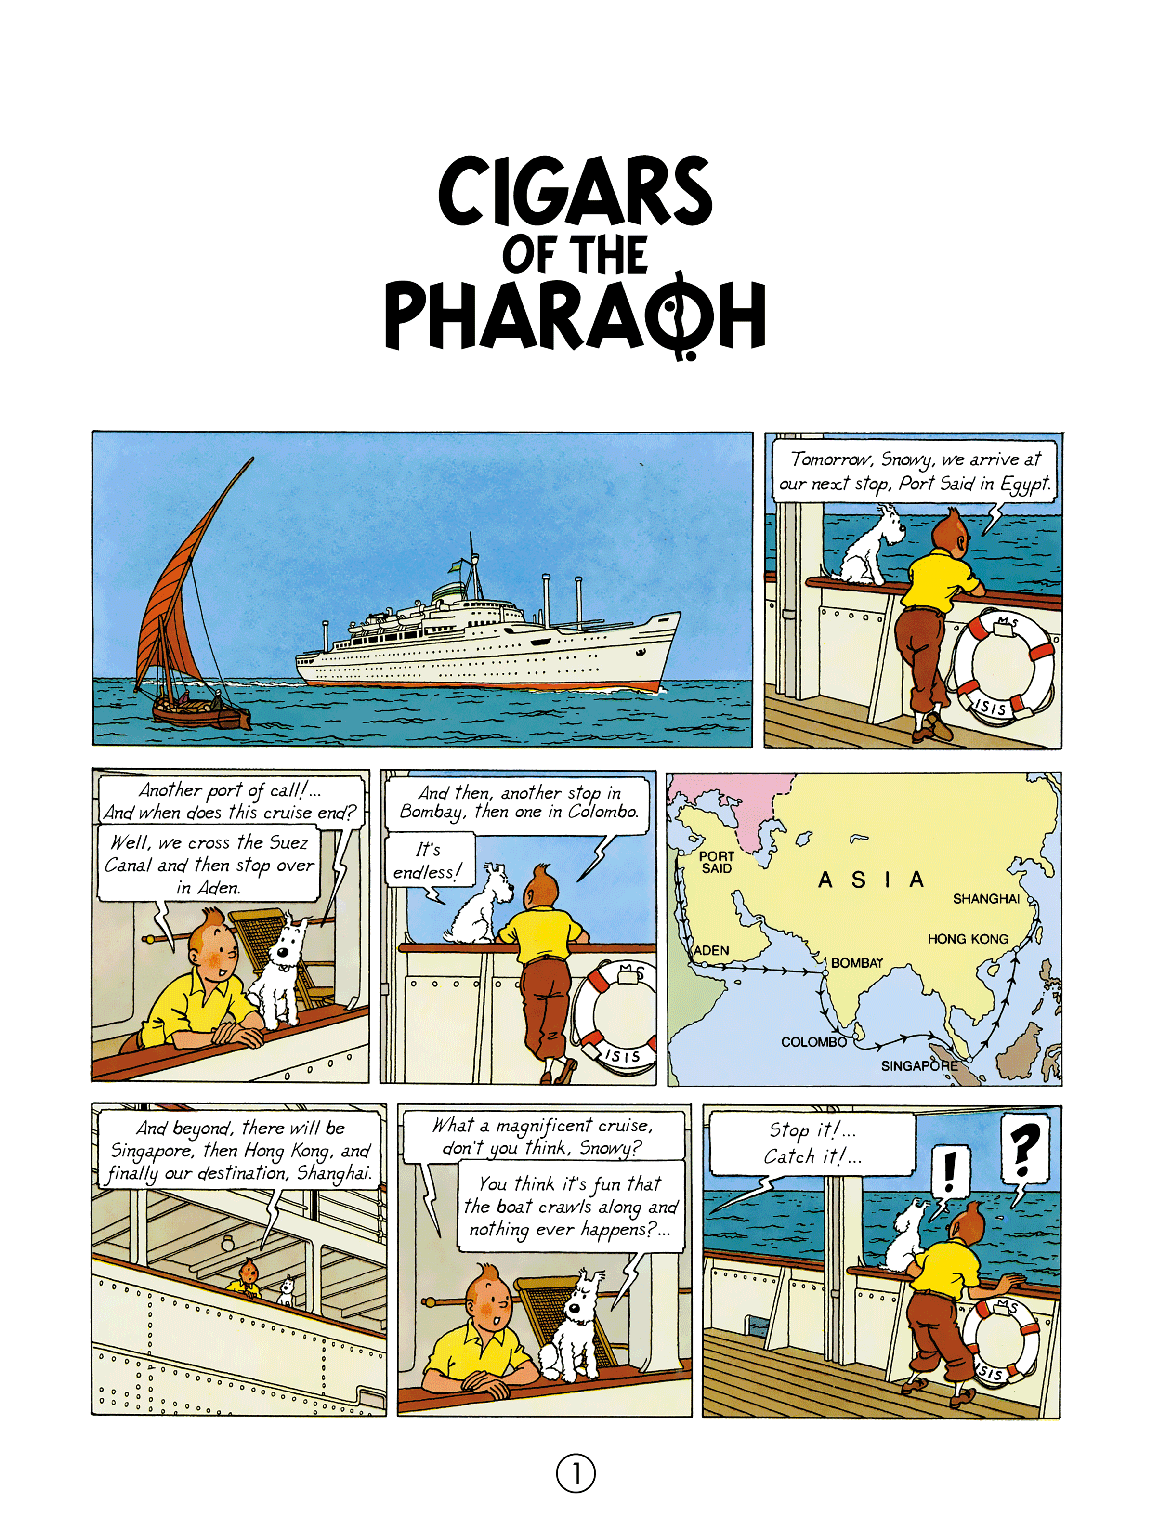 Cigars of the Pharaoh - Page 1